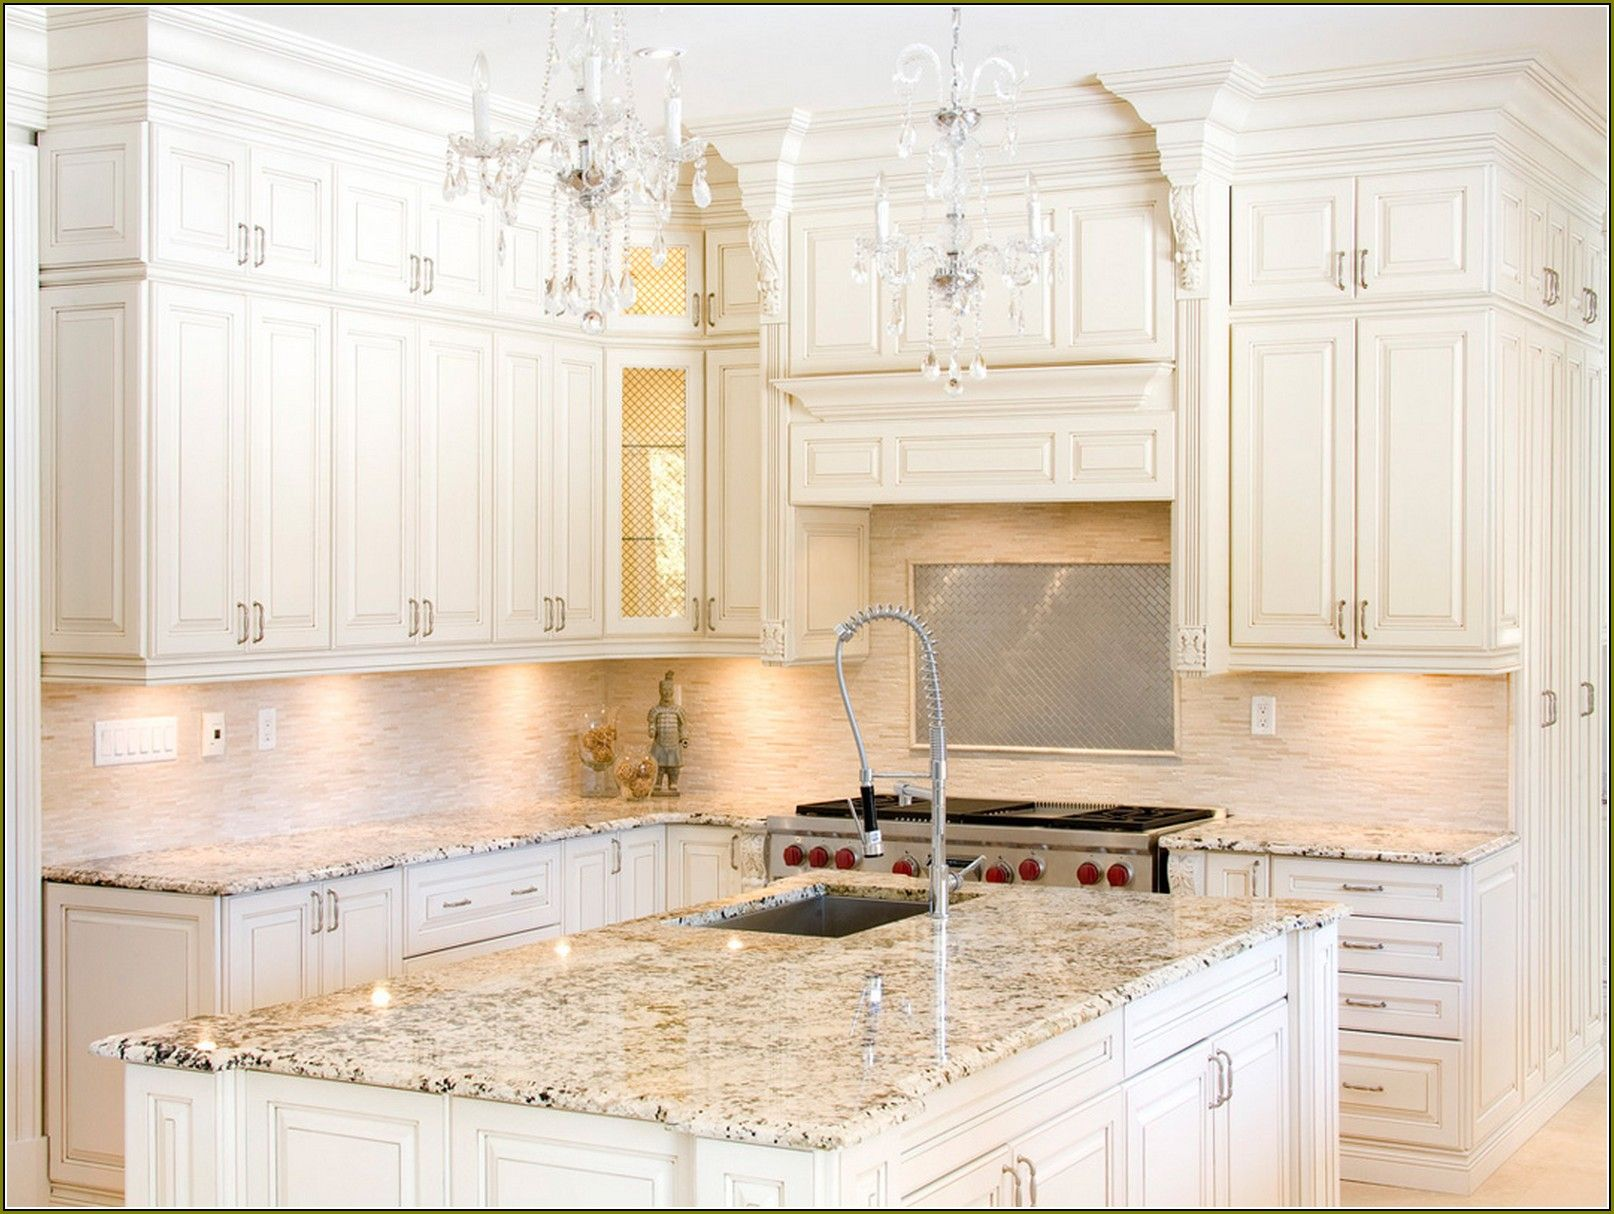 Off white kitchen cabinets with granite countertops Best white kitchen ideas